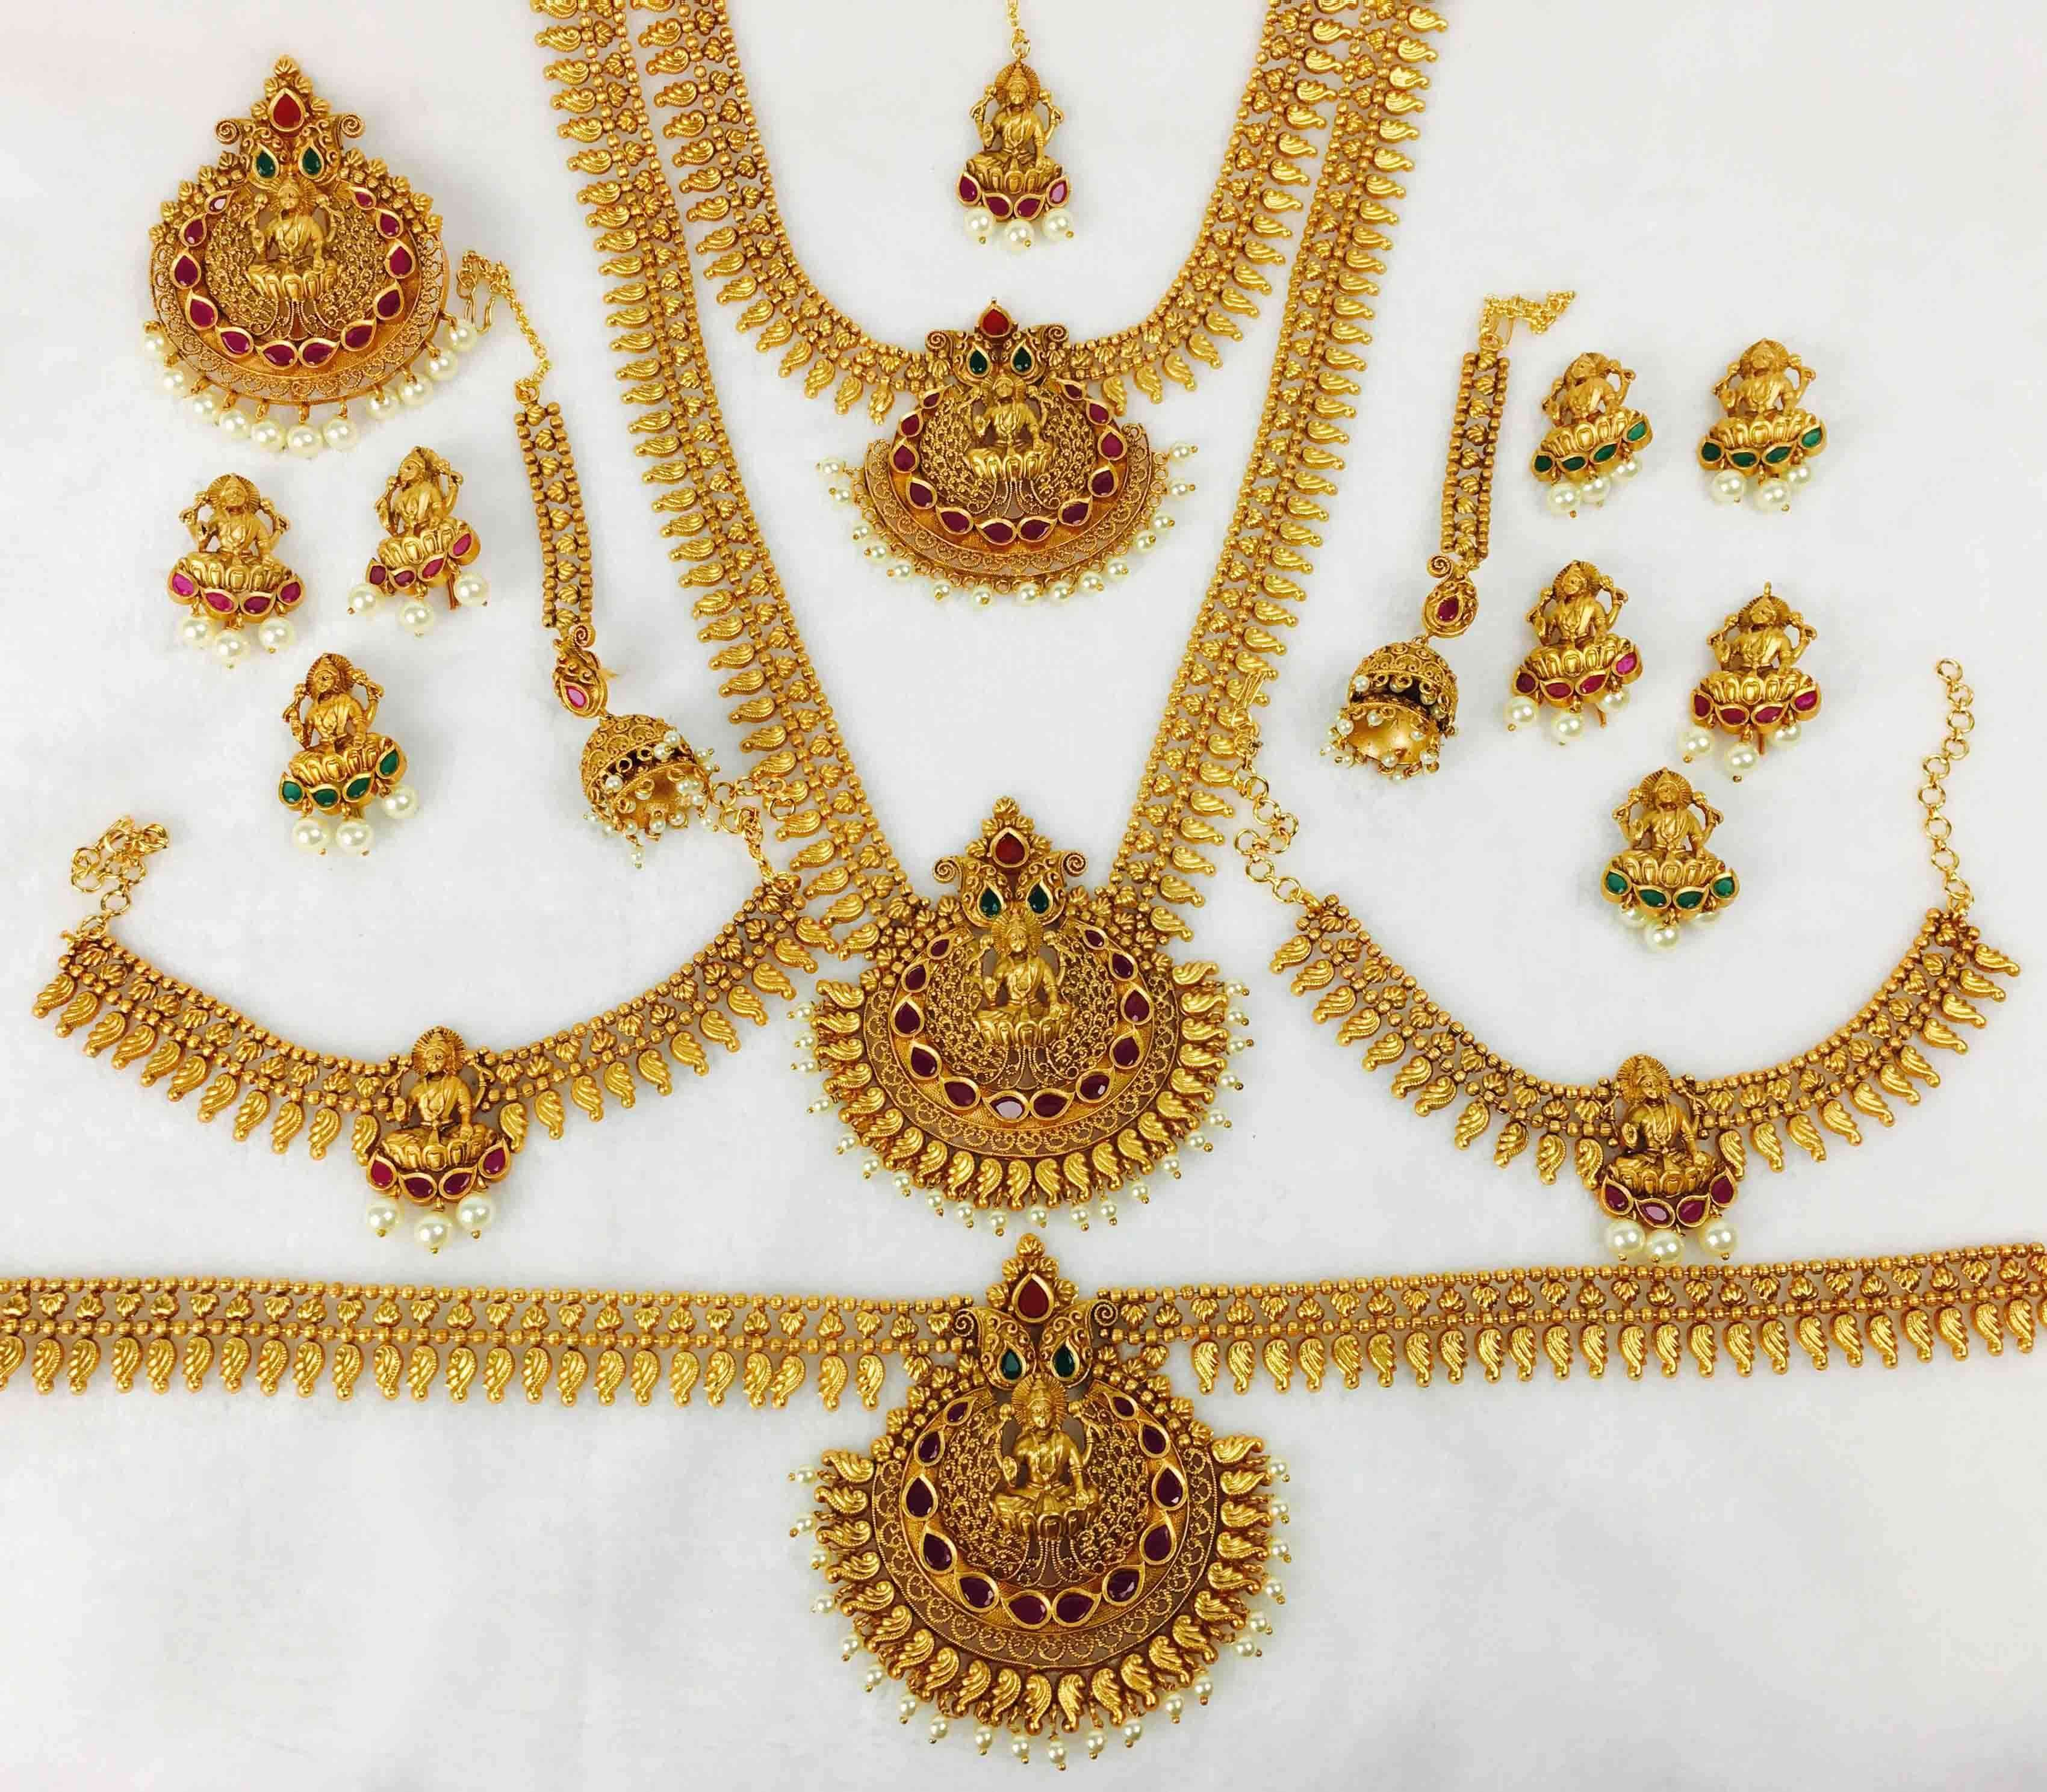 we are specialize to offering the oddiyanam for rent in